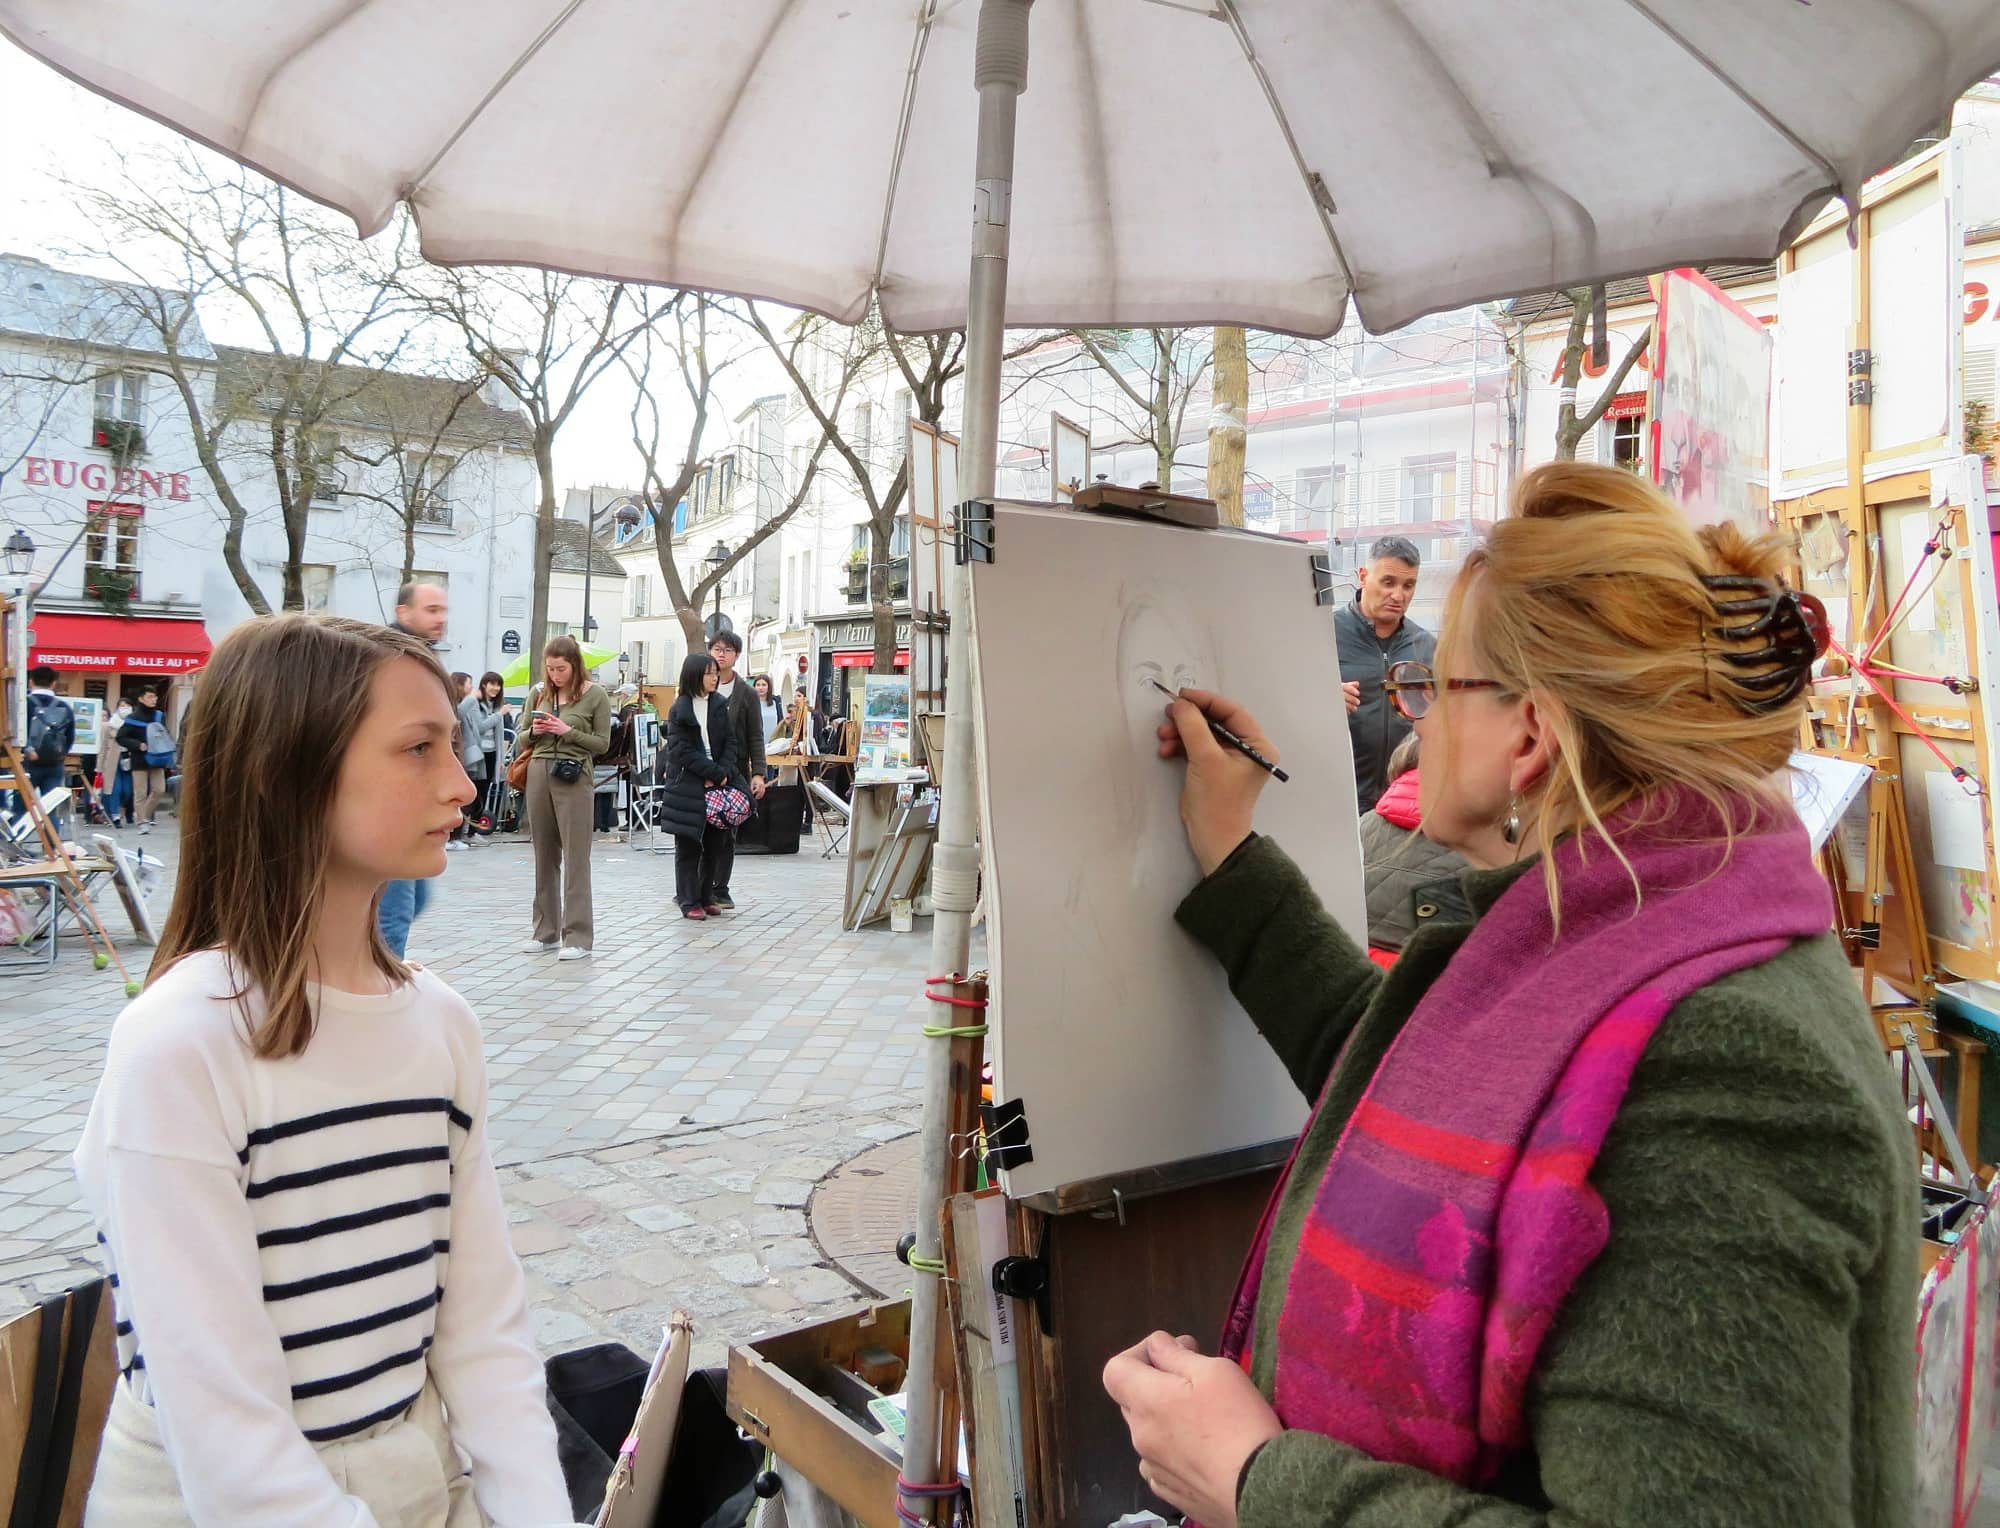 My daughter getting her portrait drawn in Montmartre